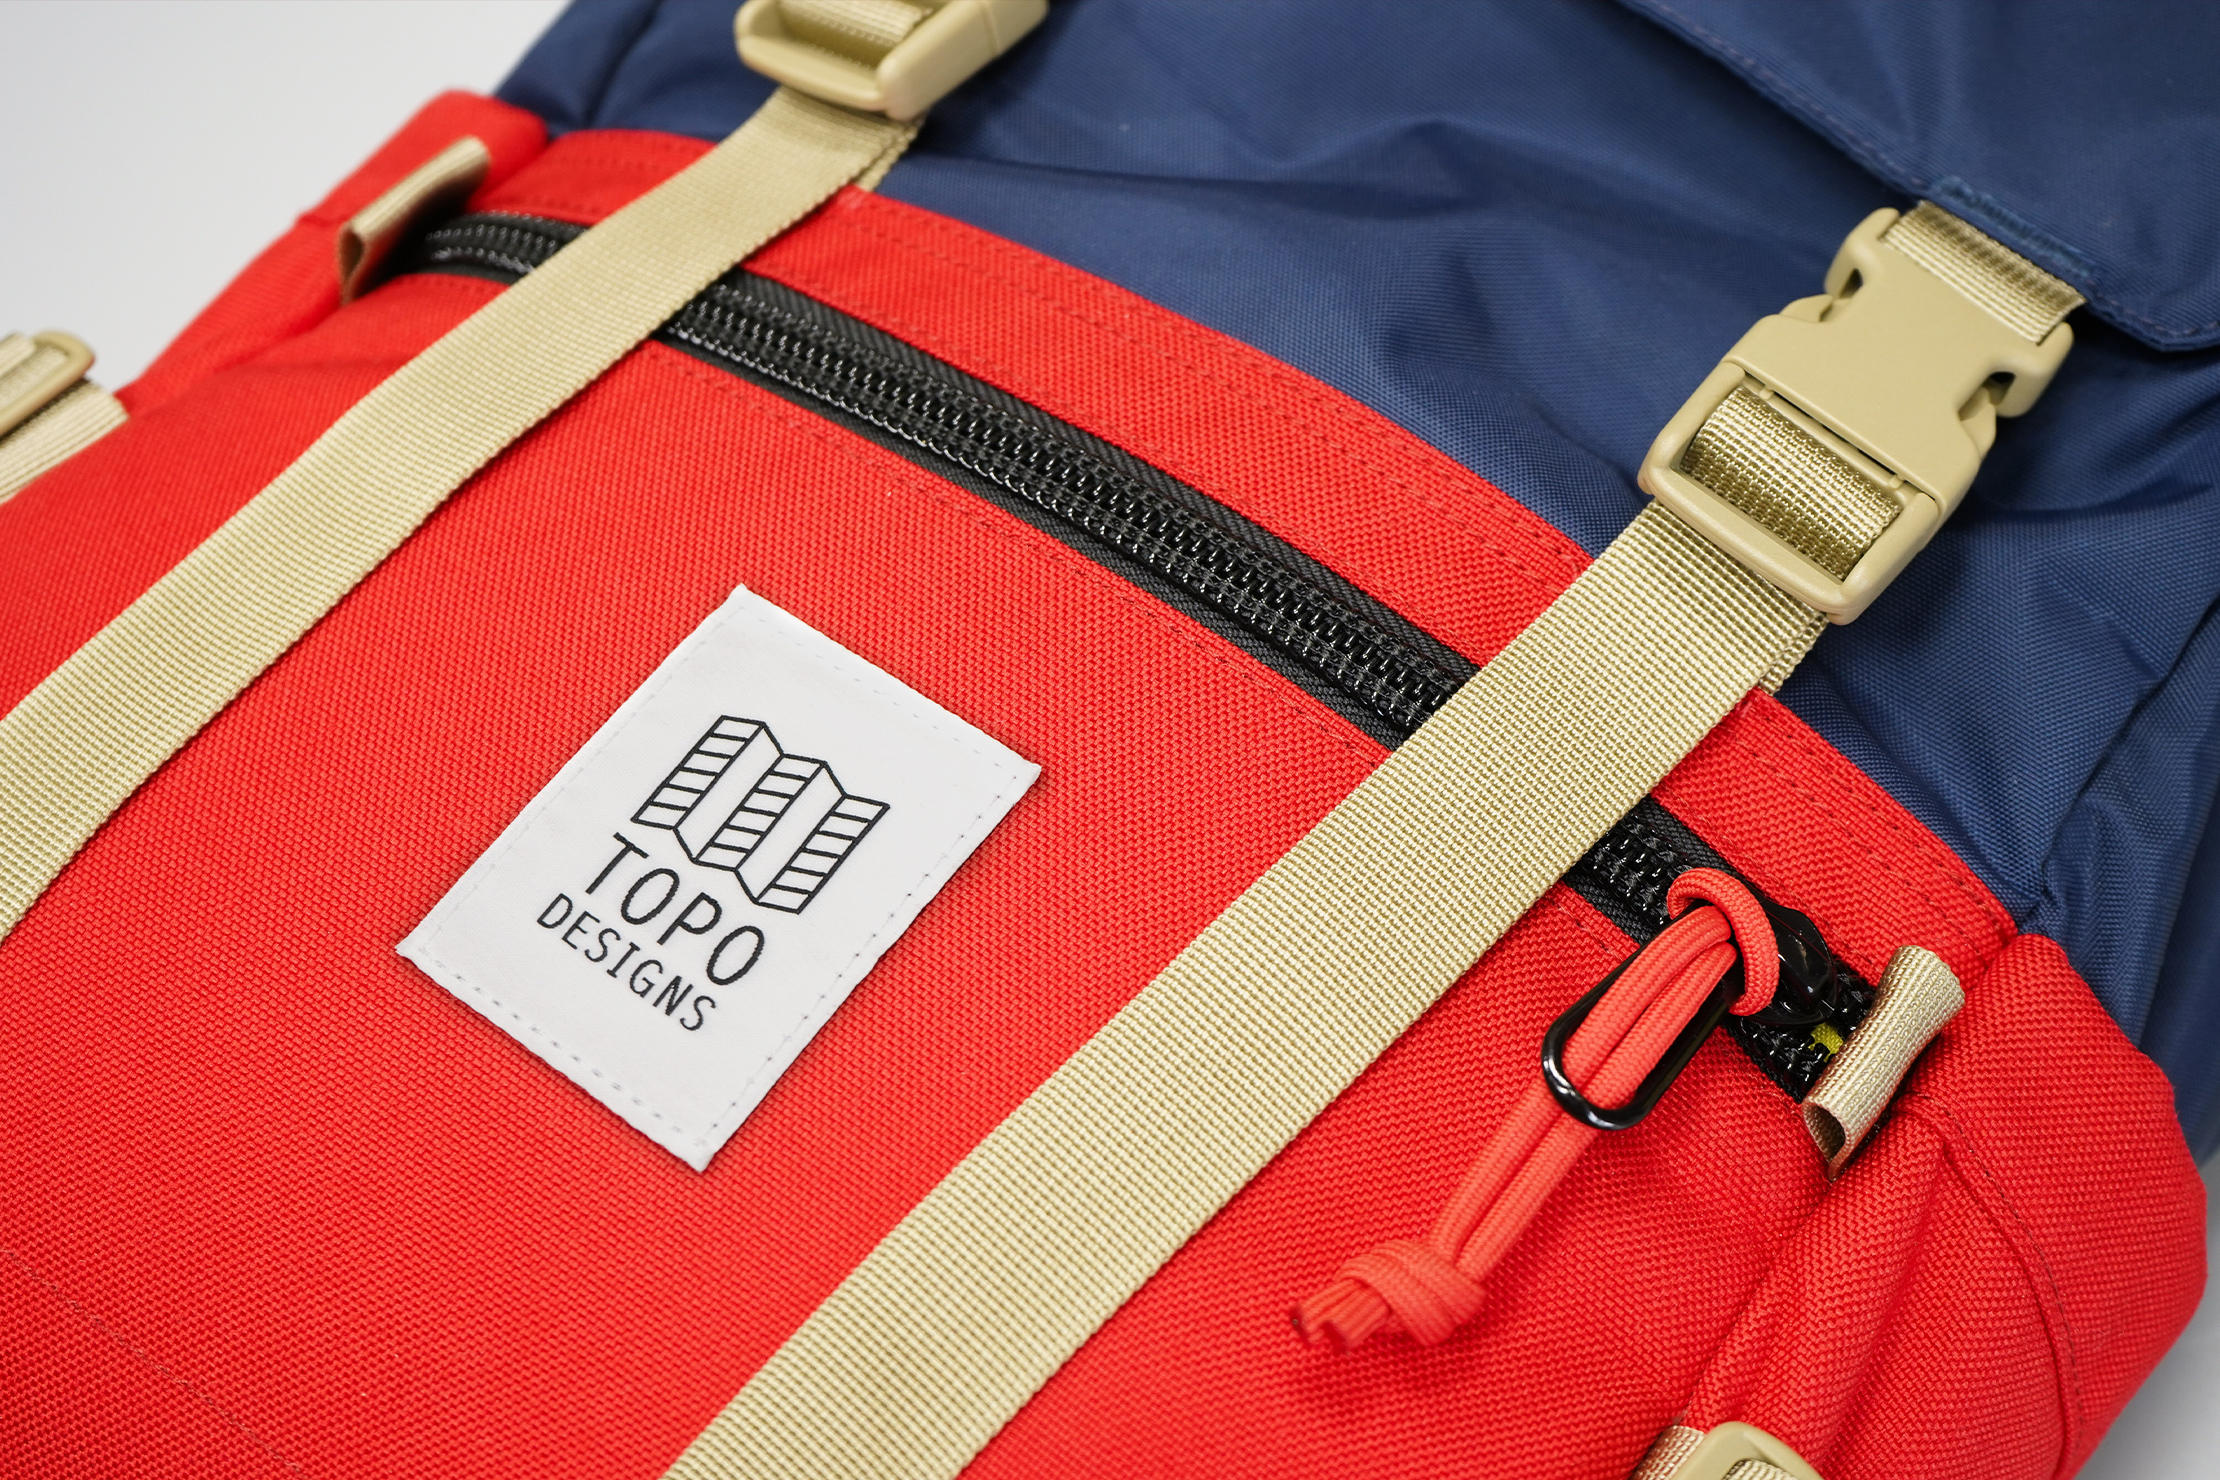 Topo Designs Rover Pack Classic | The YKK zippers on the quick-grab pockets feel chunky and easy to use